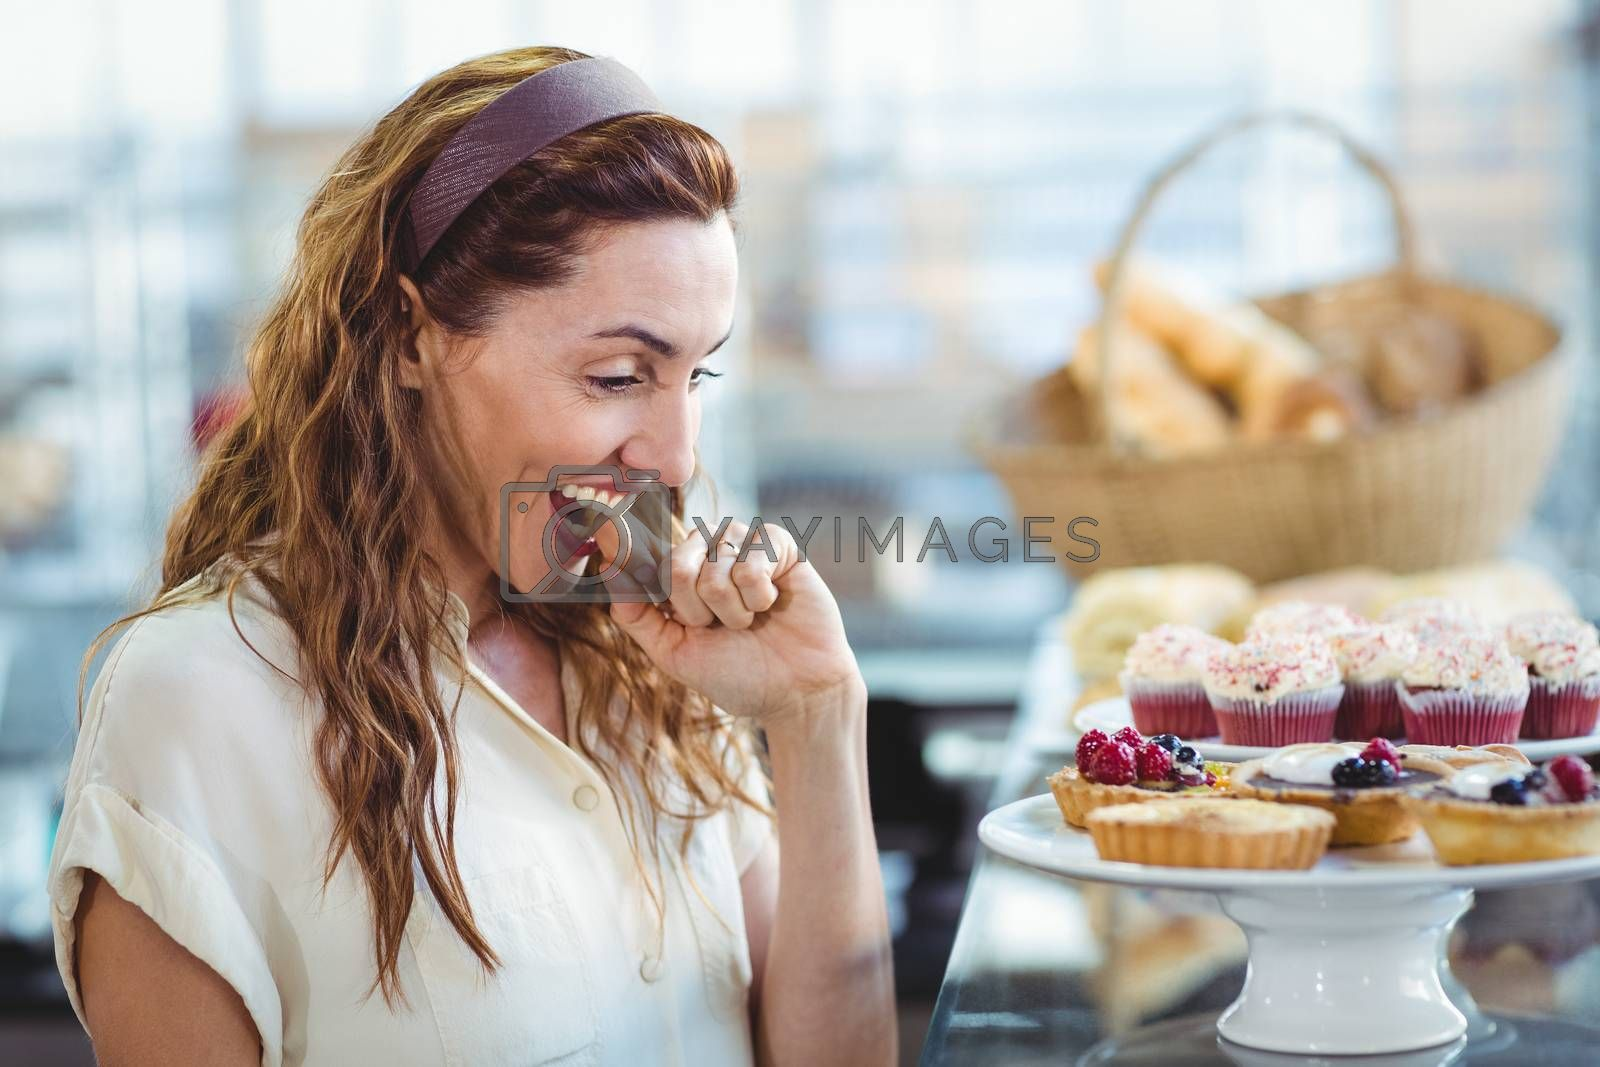 Royalty free image of Astonished pretty woman looking at cakes by Wavebreakmedia